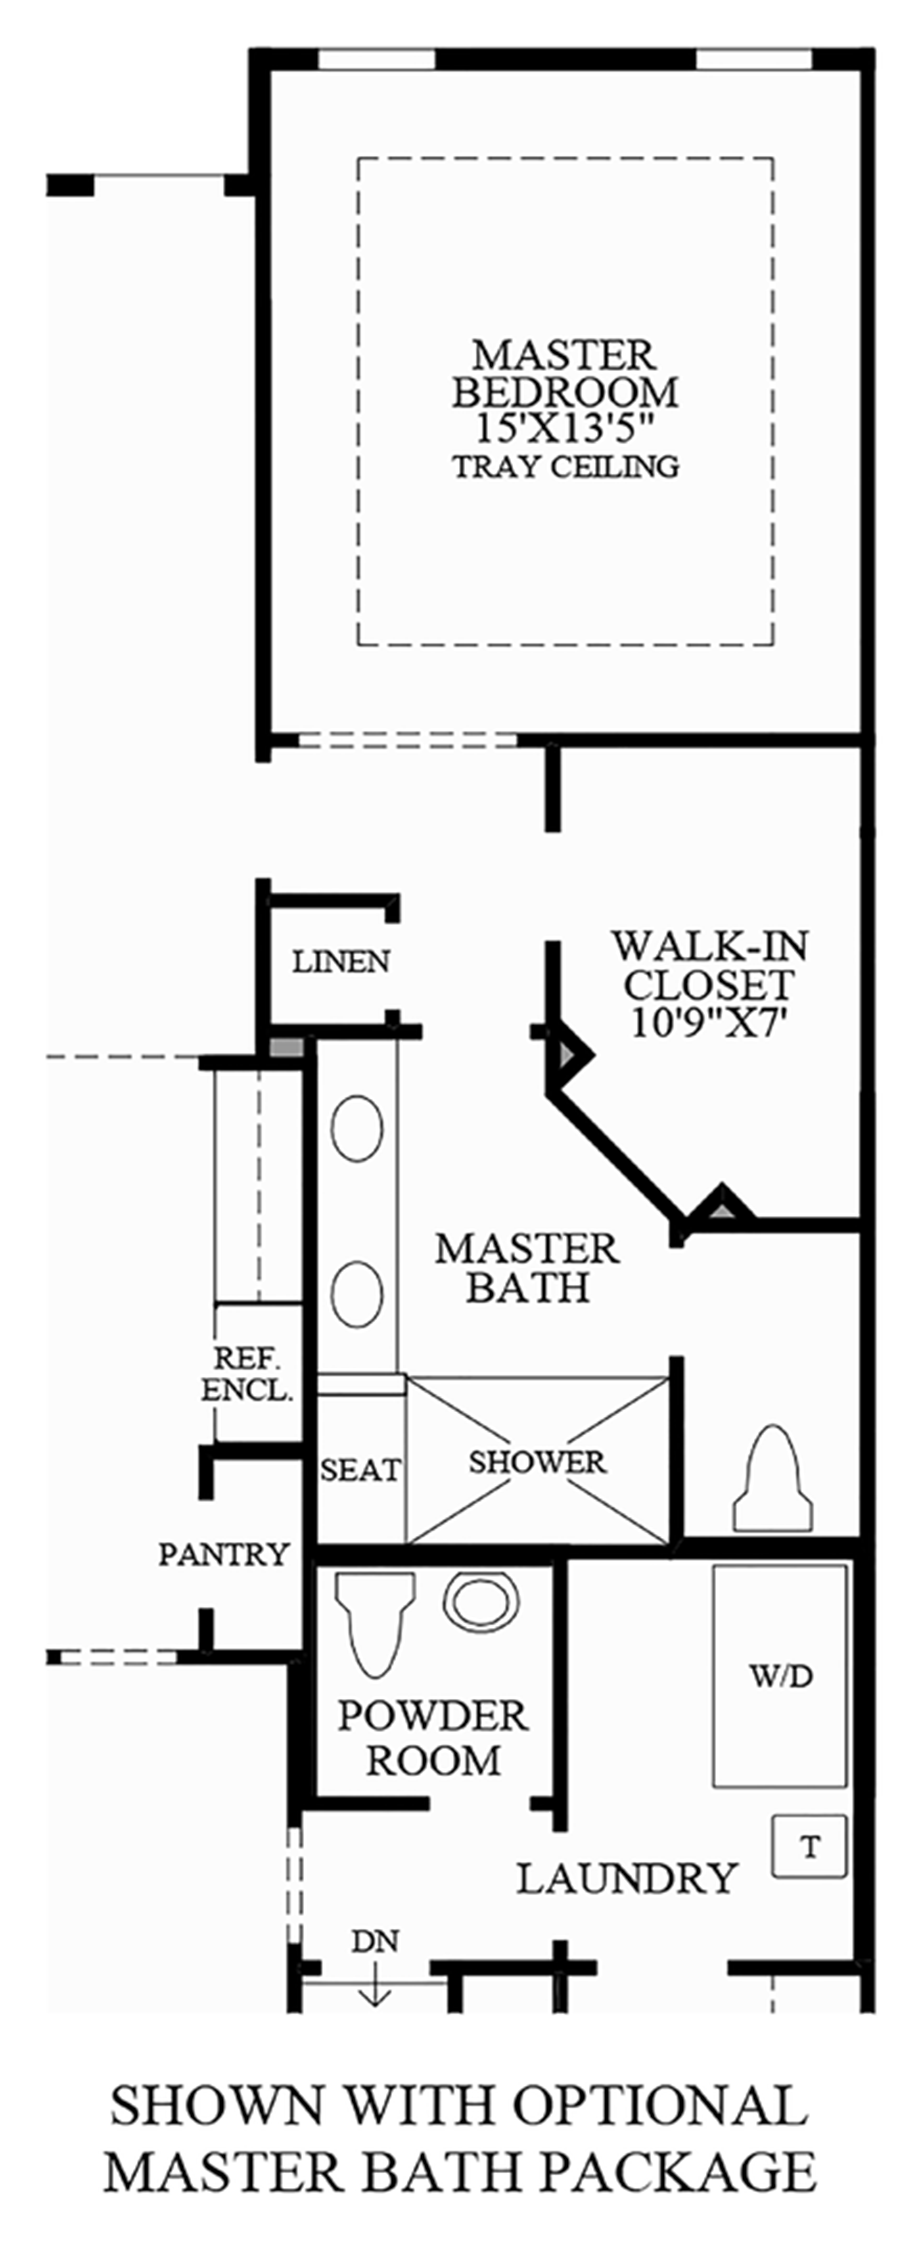 Optional Master Bath Package Floor Plan